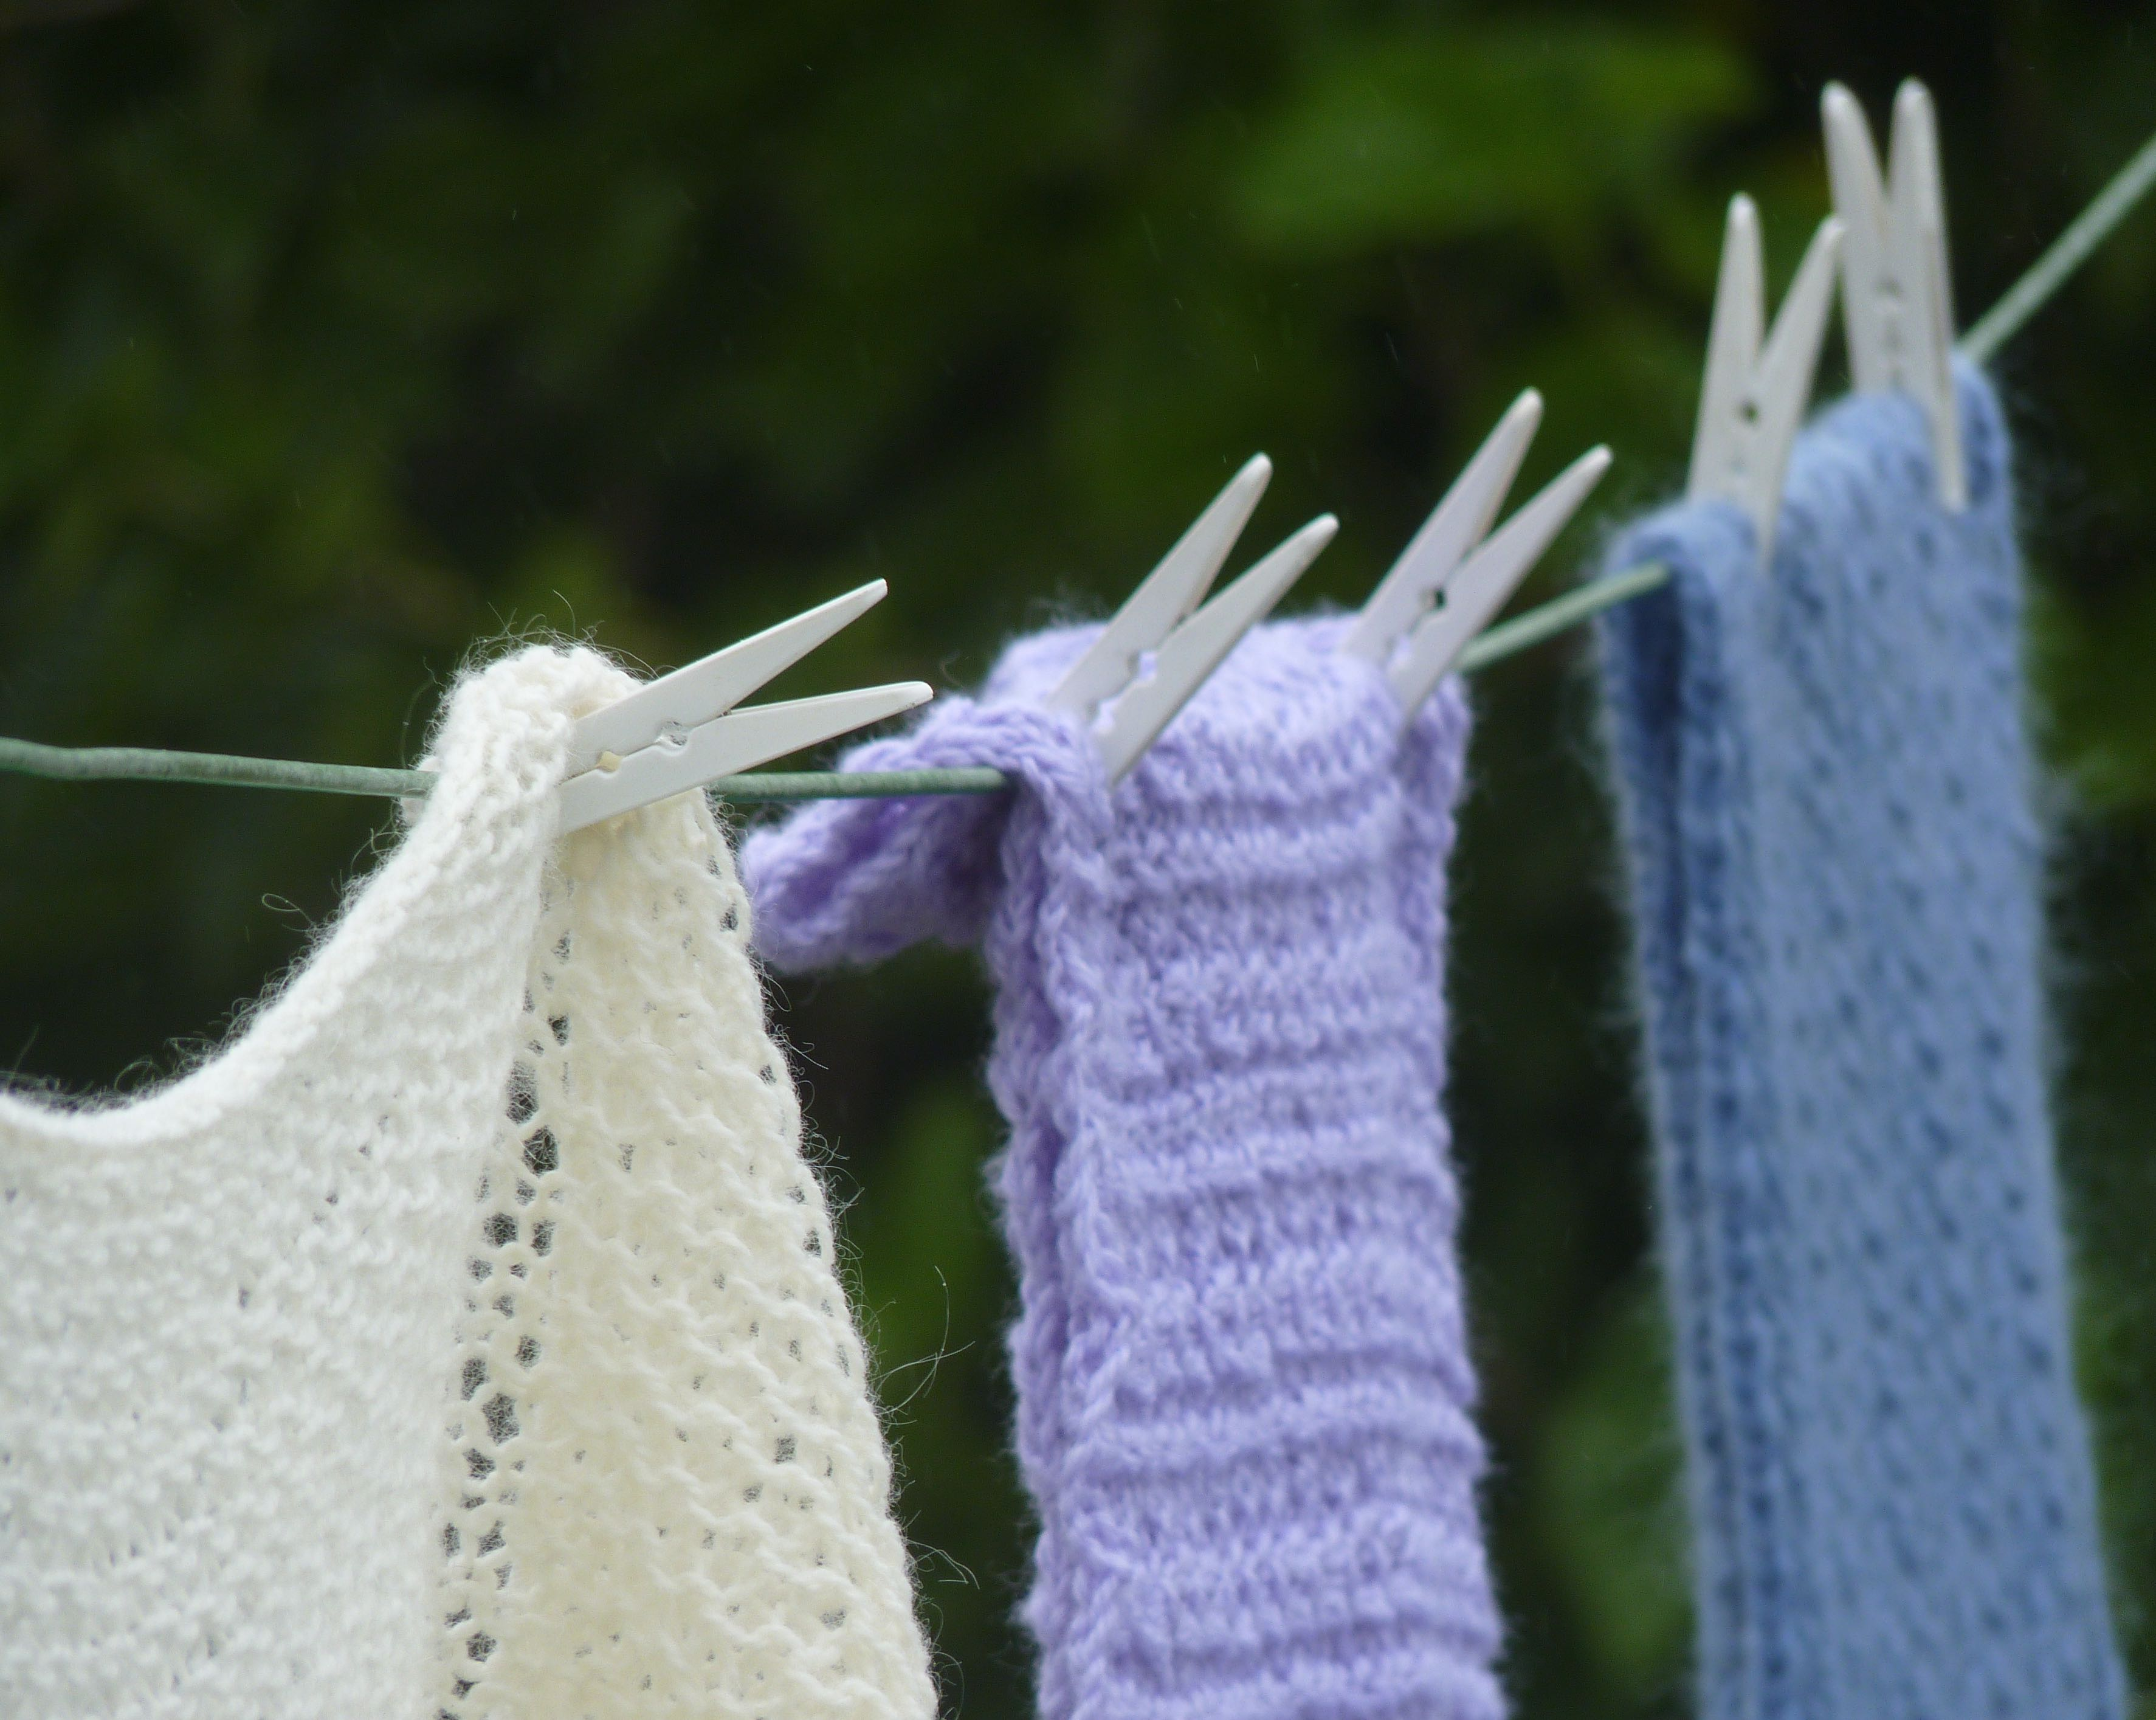 Woolen scarves hanging on a clothes line